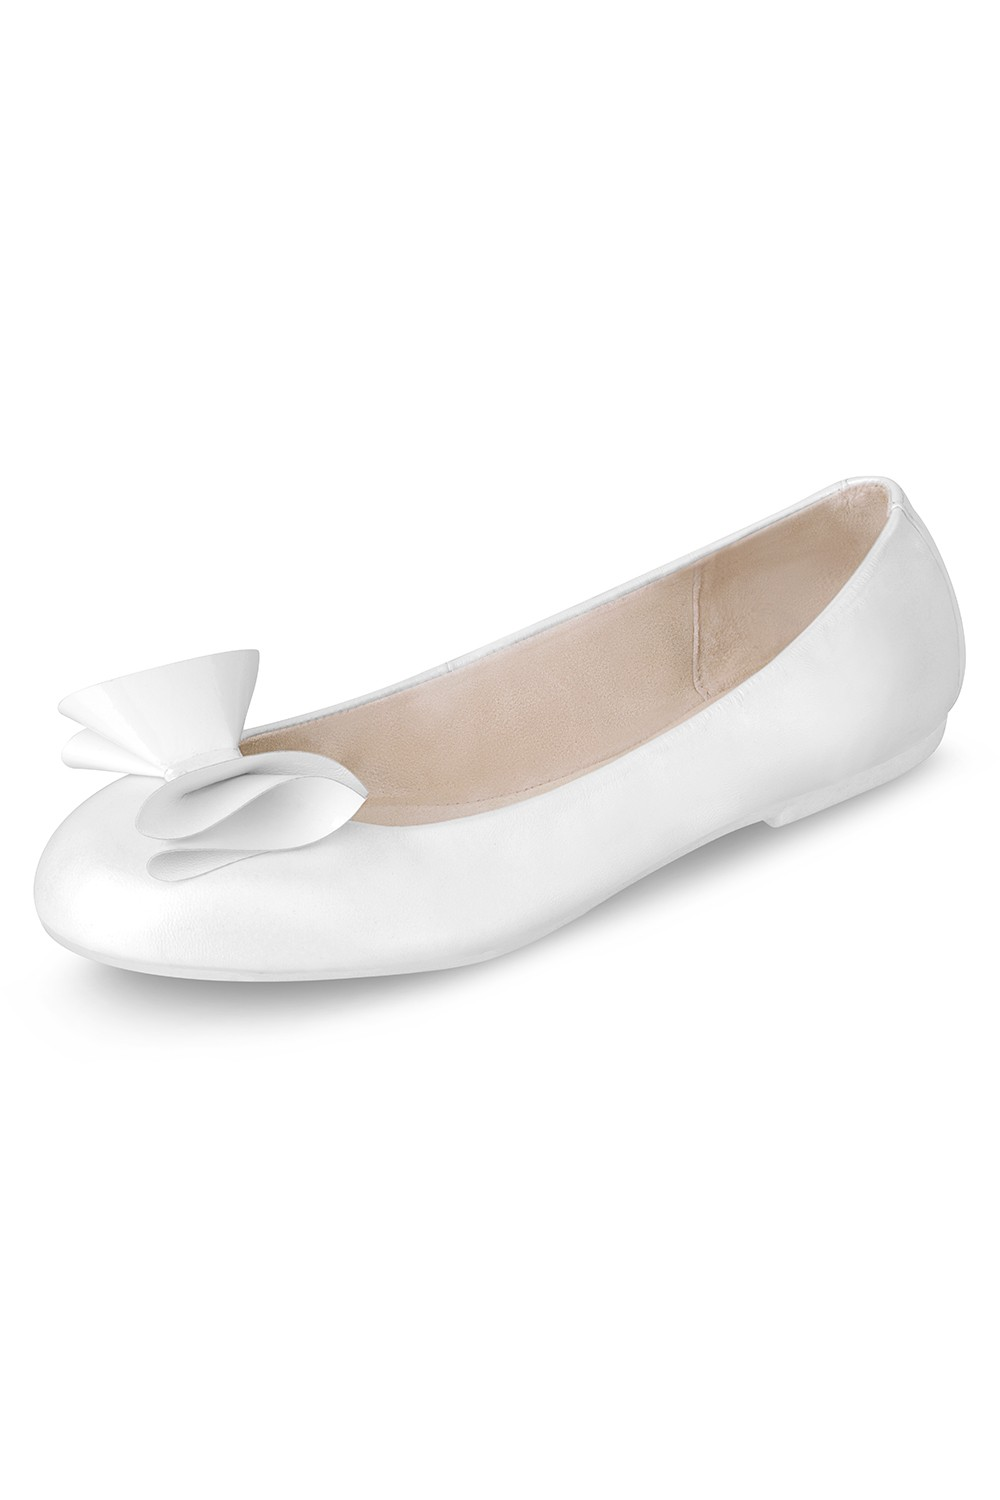 Esperanza Ladies Ballet Flat Womens Fashion Shoes